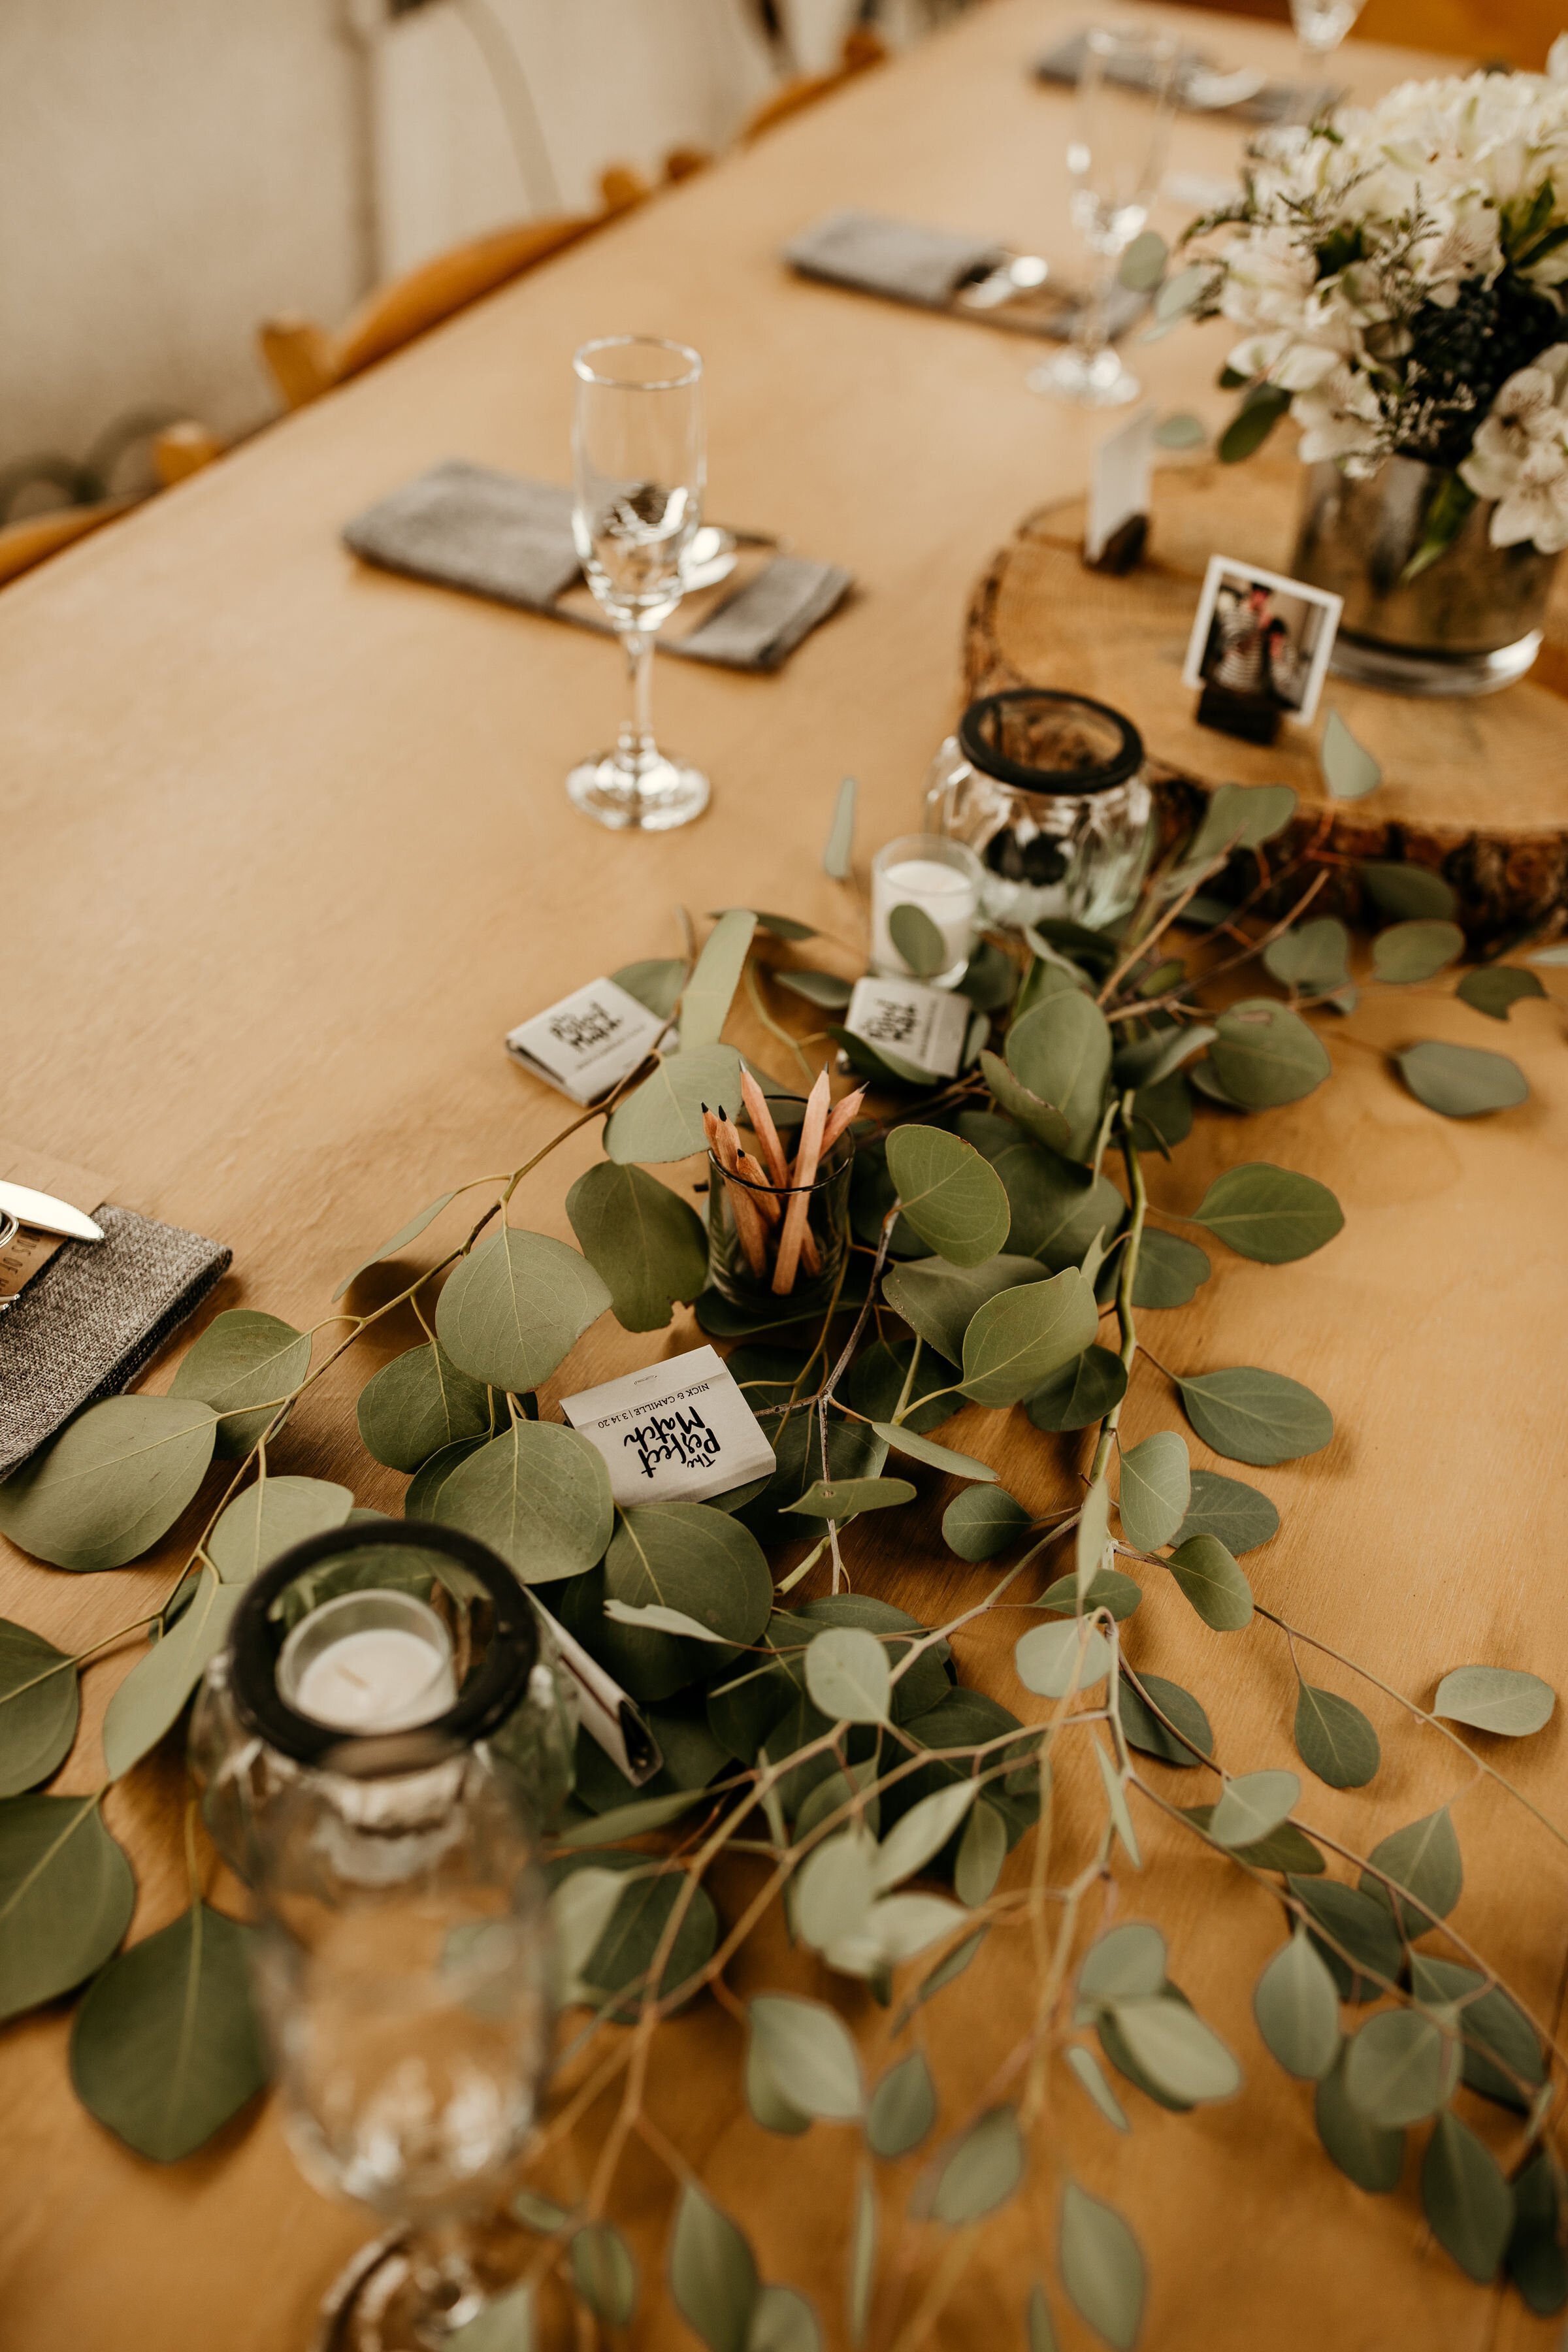 Simple Wedding Reception Table Decorations  from images.squarespace-cdn.com